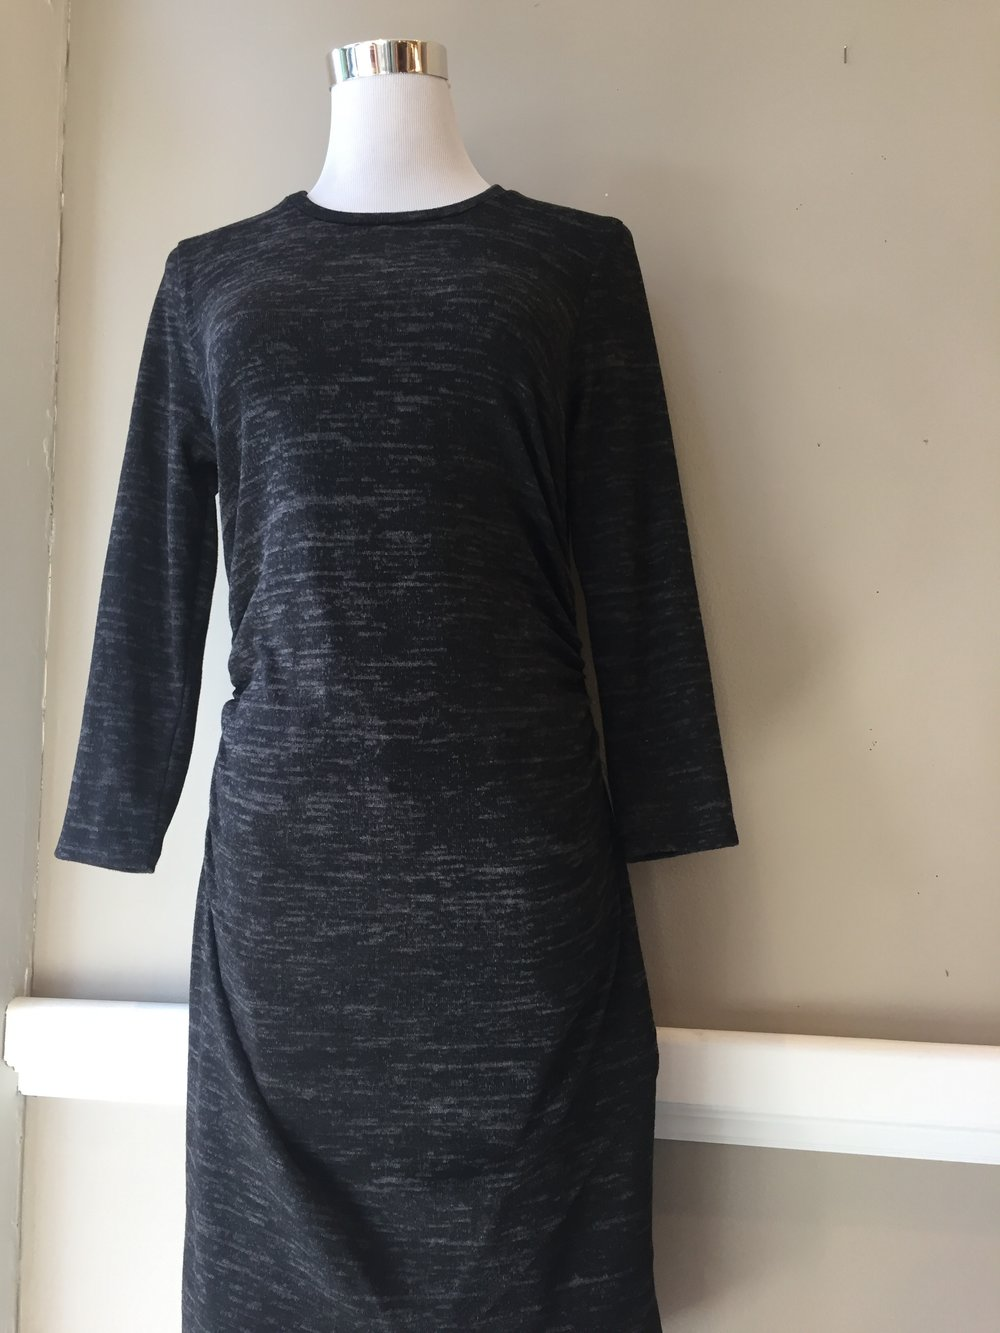 Dress with tulip detail ($35, also in heather grey)